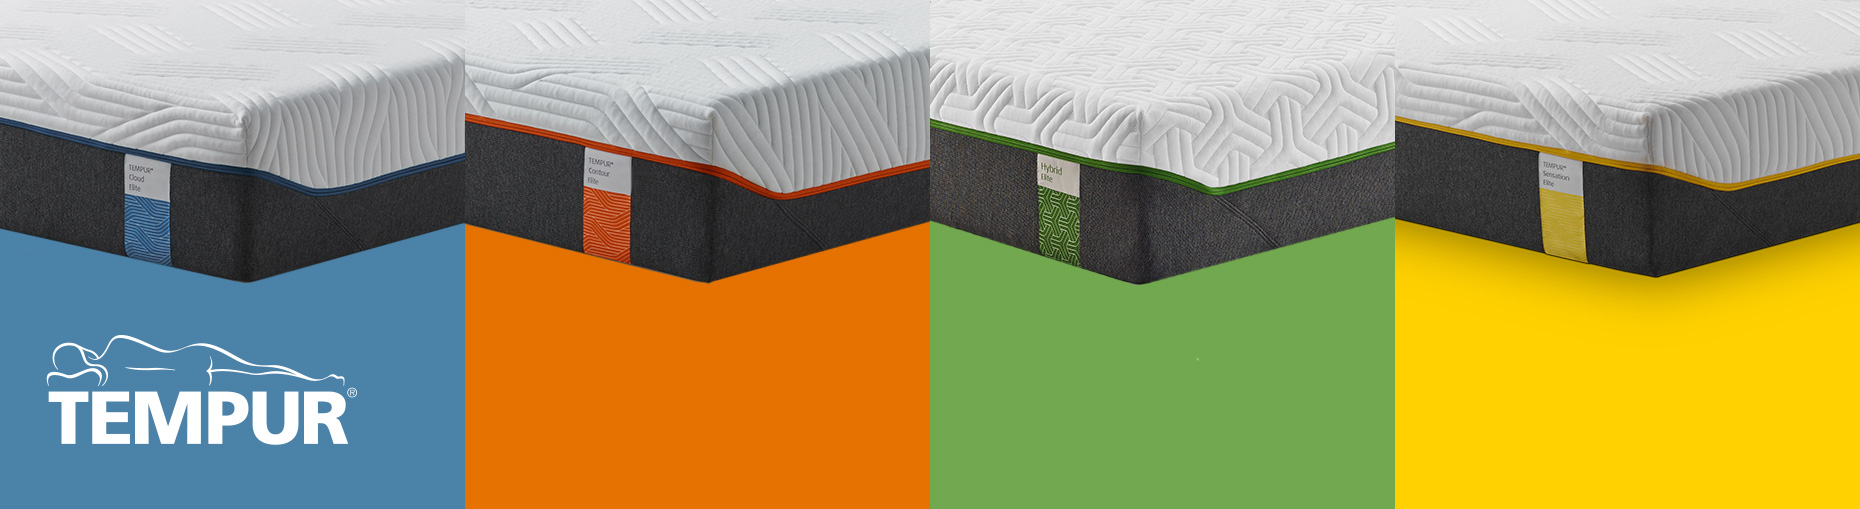 Tempur mattress collections at Forrest Furnishing